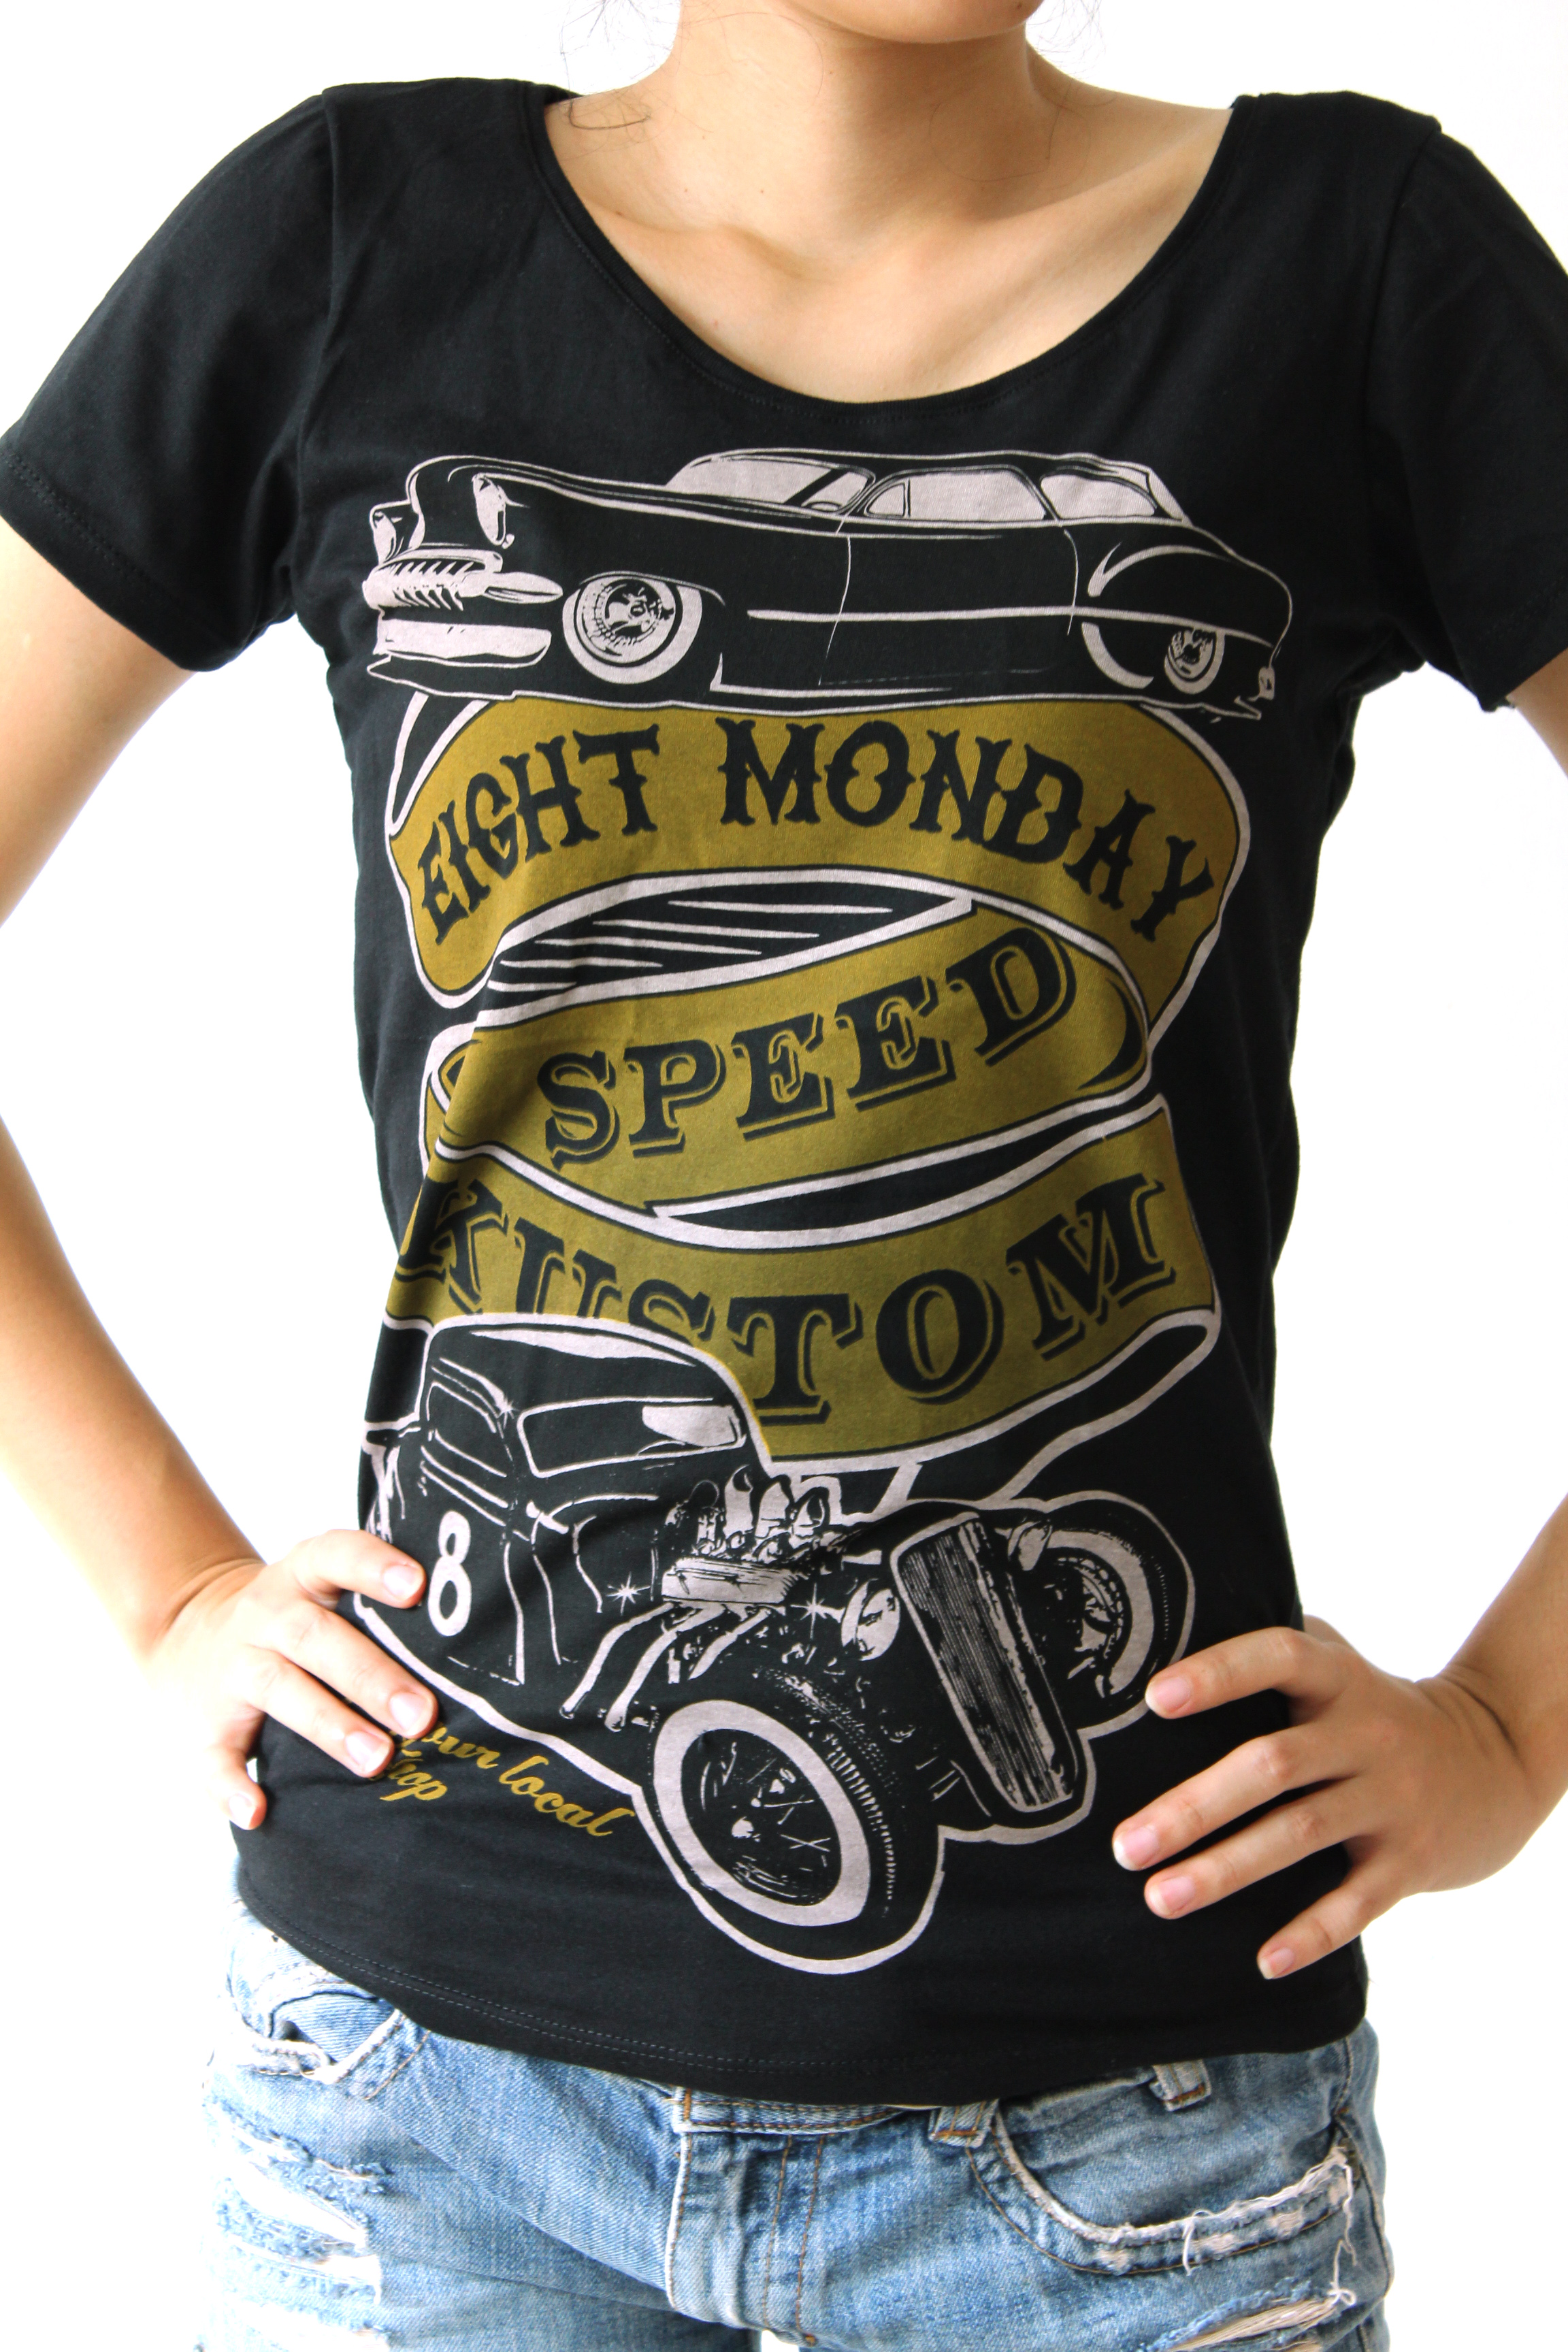 eight_monday_rockabilly_shirt_hot_rod_vintage_cafe_racer_pin_up_em6_t_shirts_4.jpg